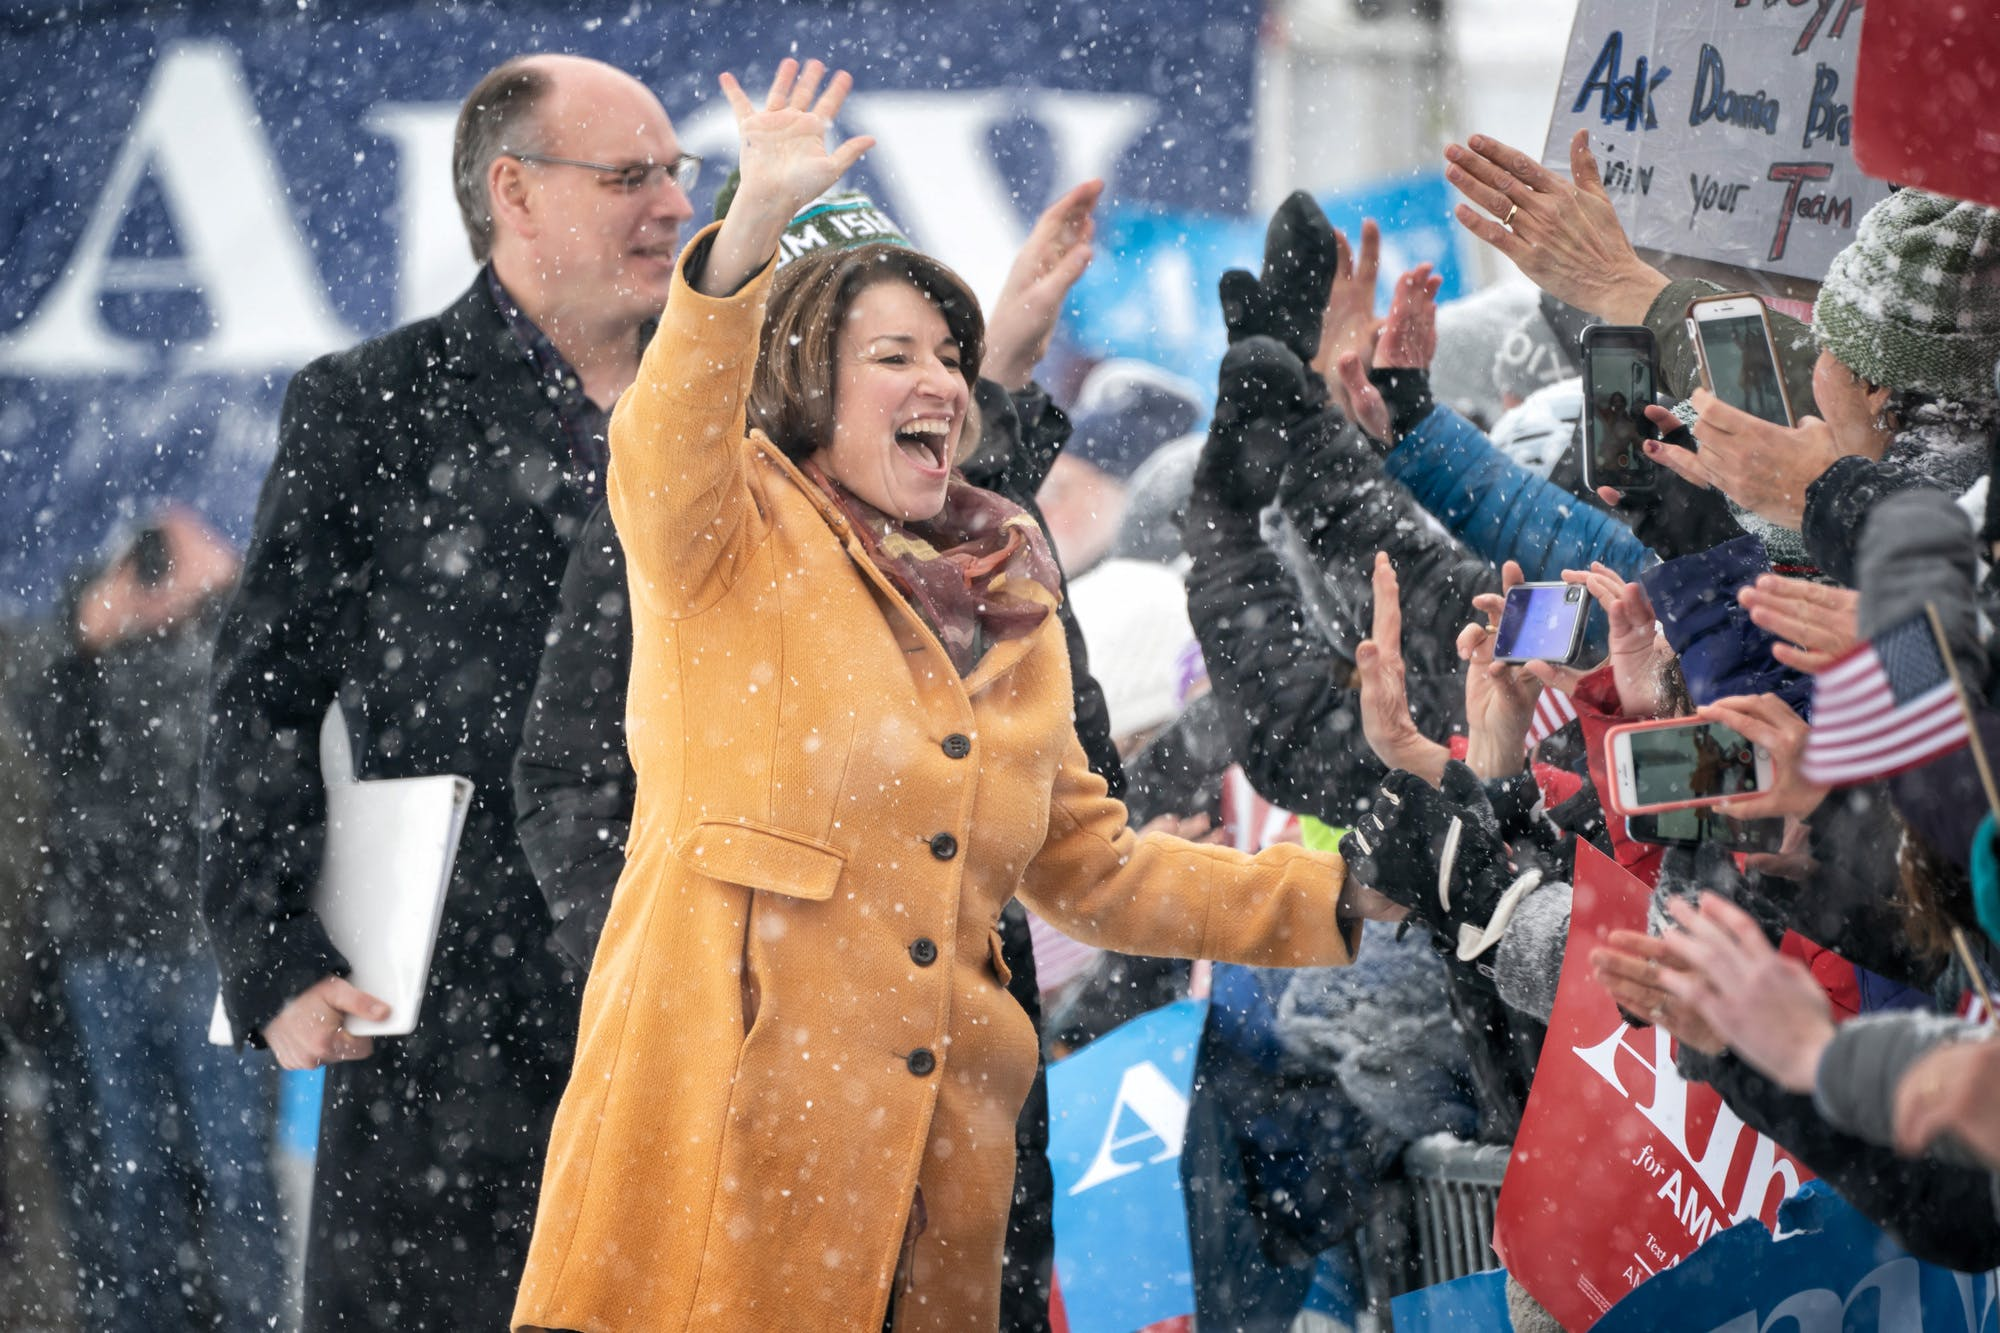 Amy Klobuchar on App Store tax